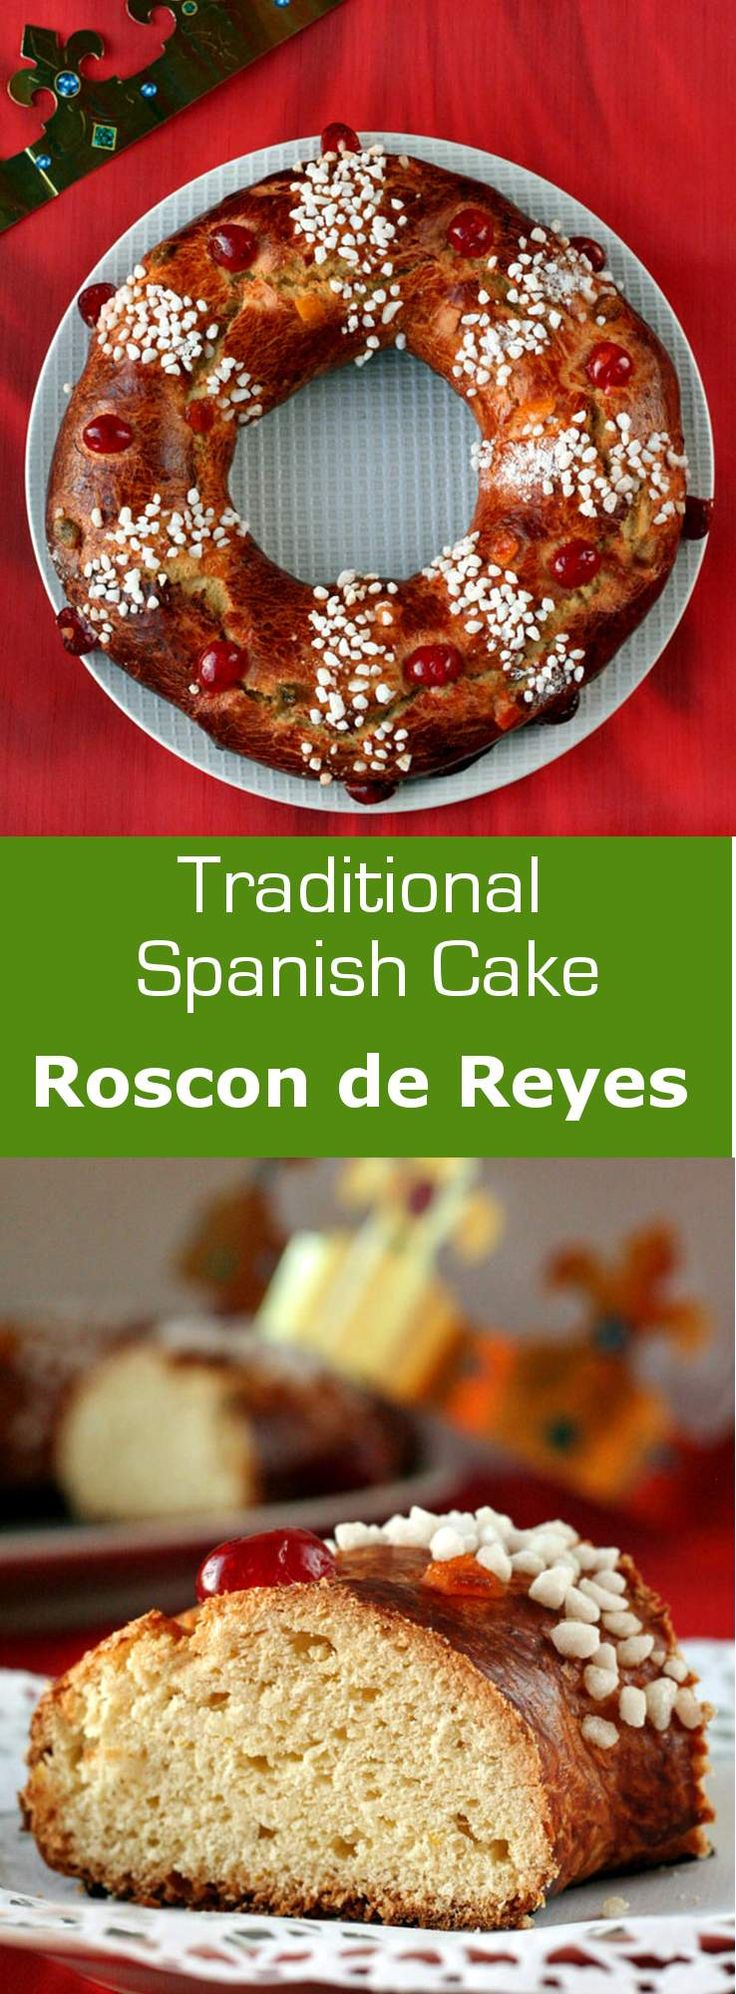 Roscon de reyes also known as the crown of kings is a Spanish brioche with Mediterranean flavors